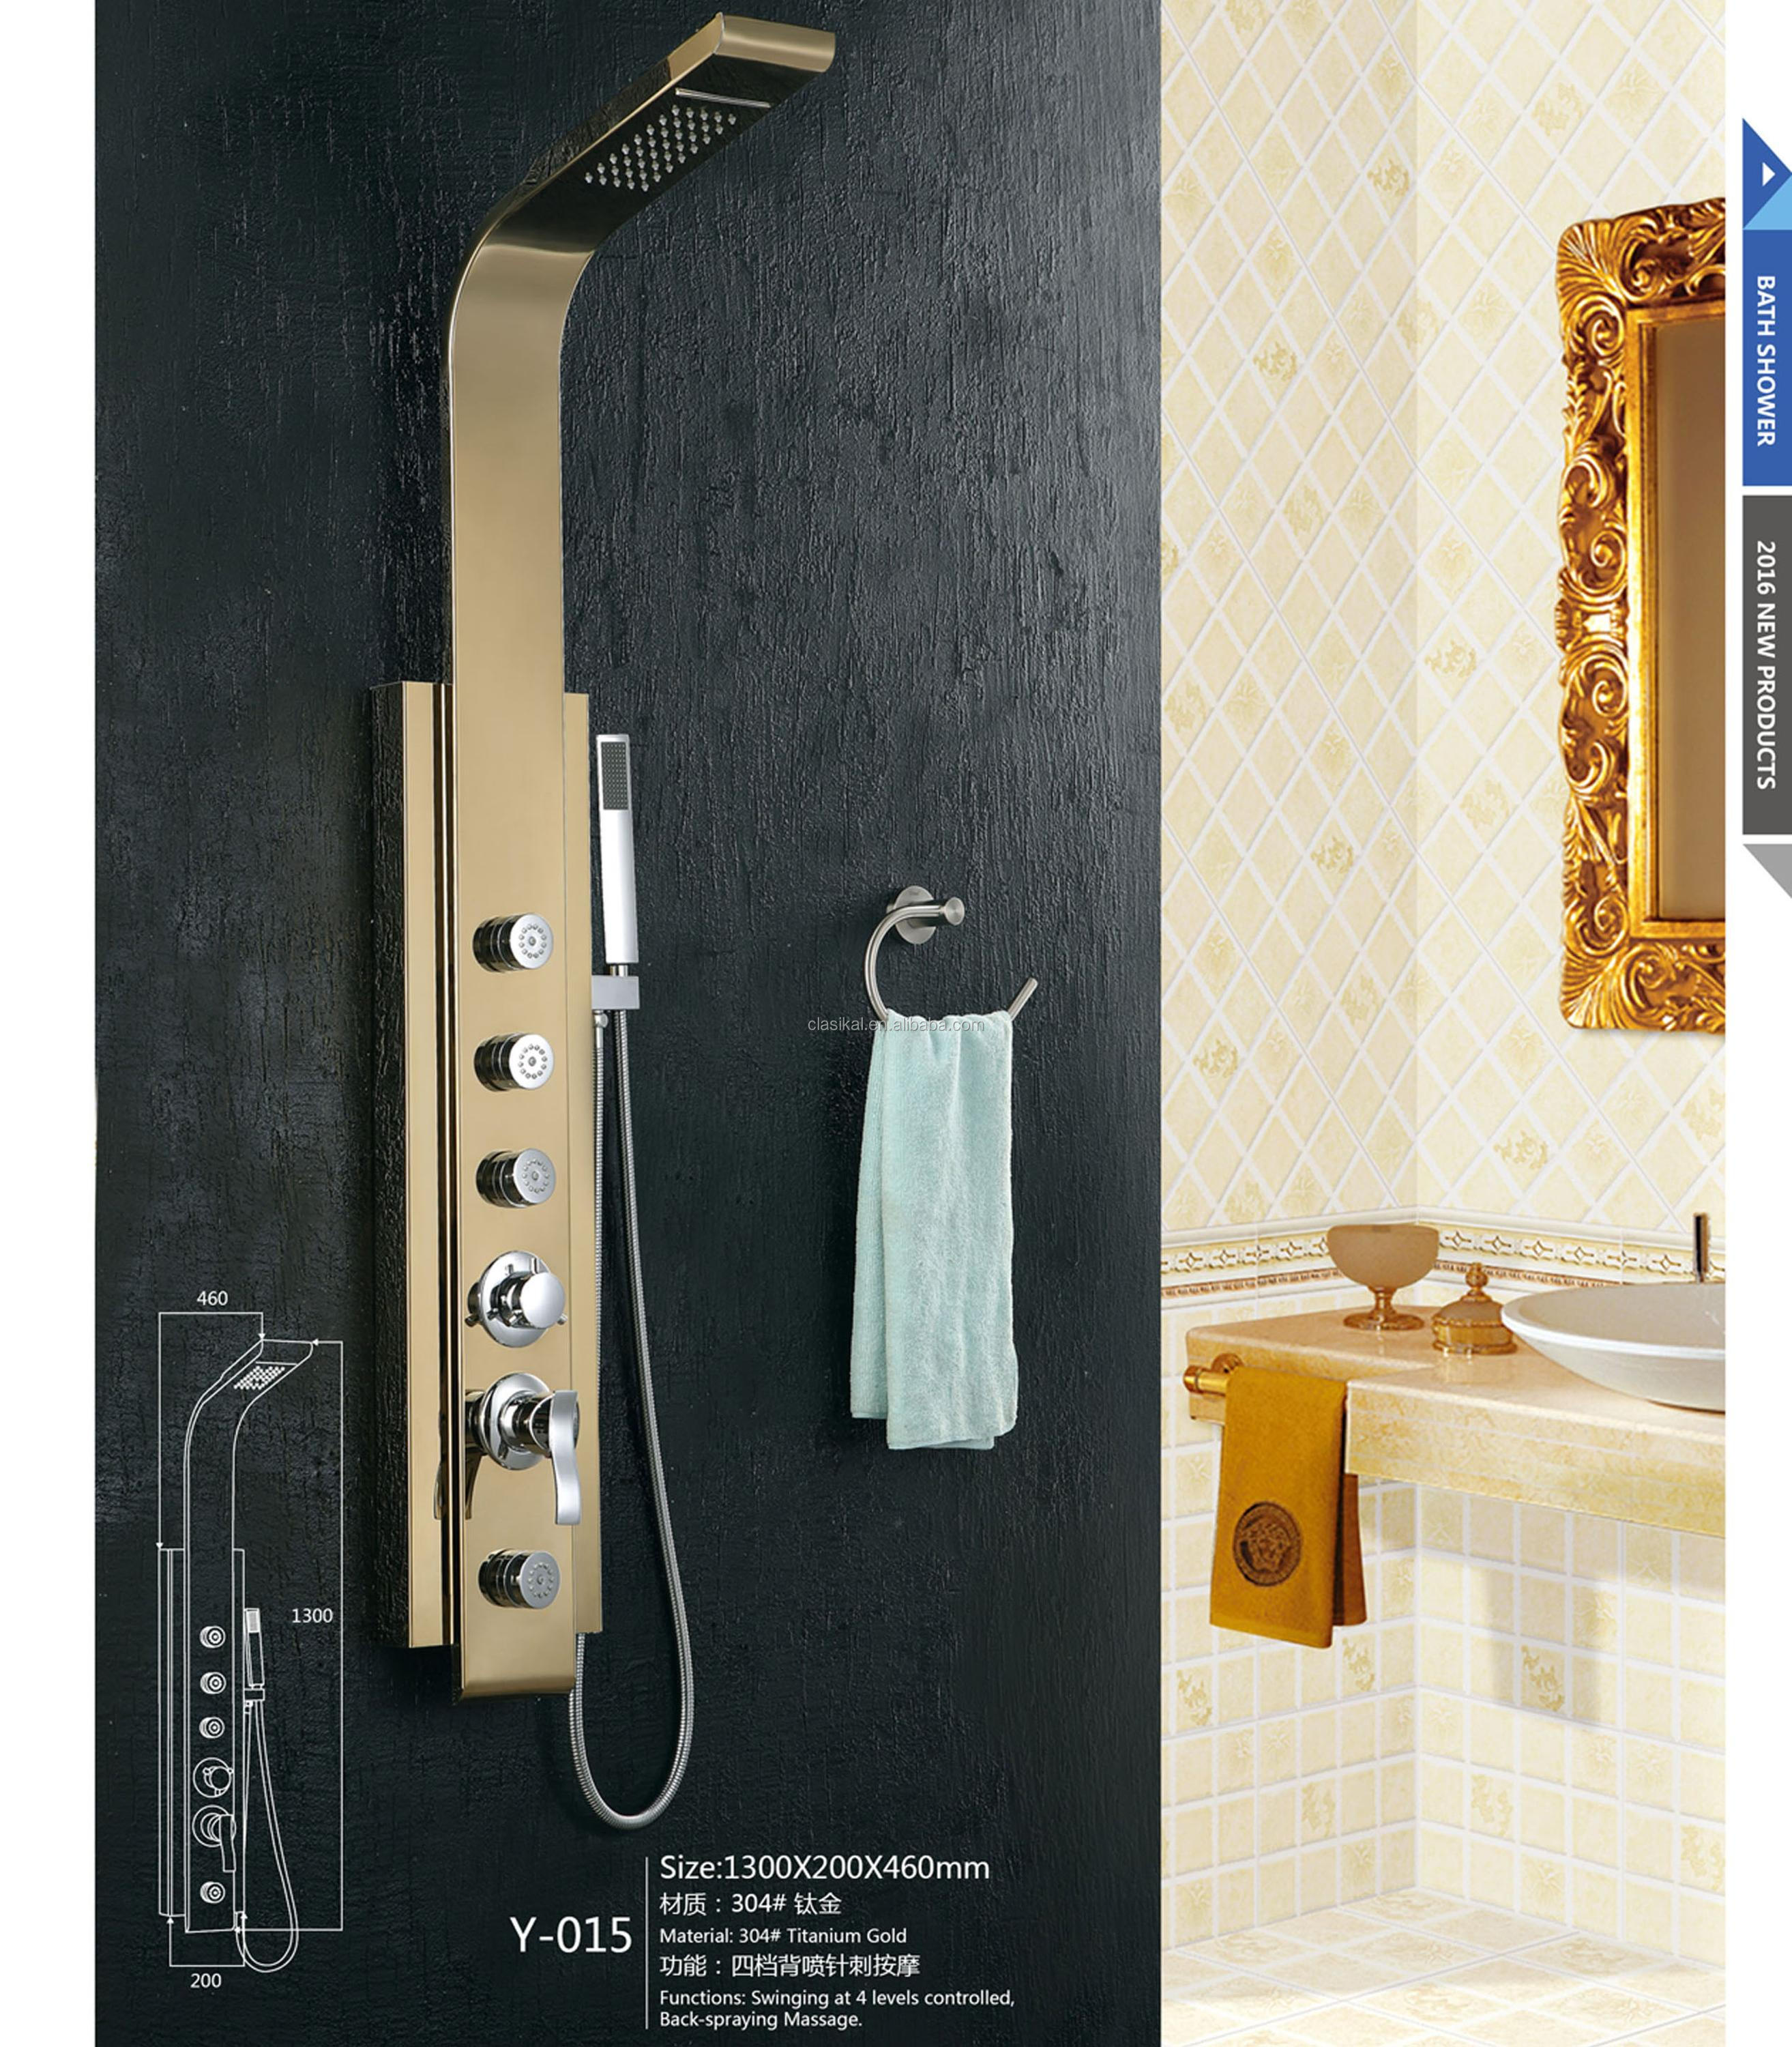 United State Nickler Color Luxury Electronic Shower Control Panel